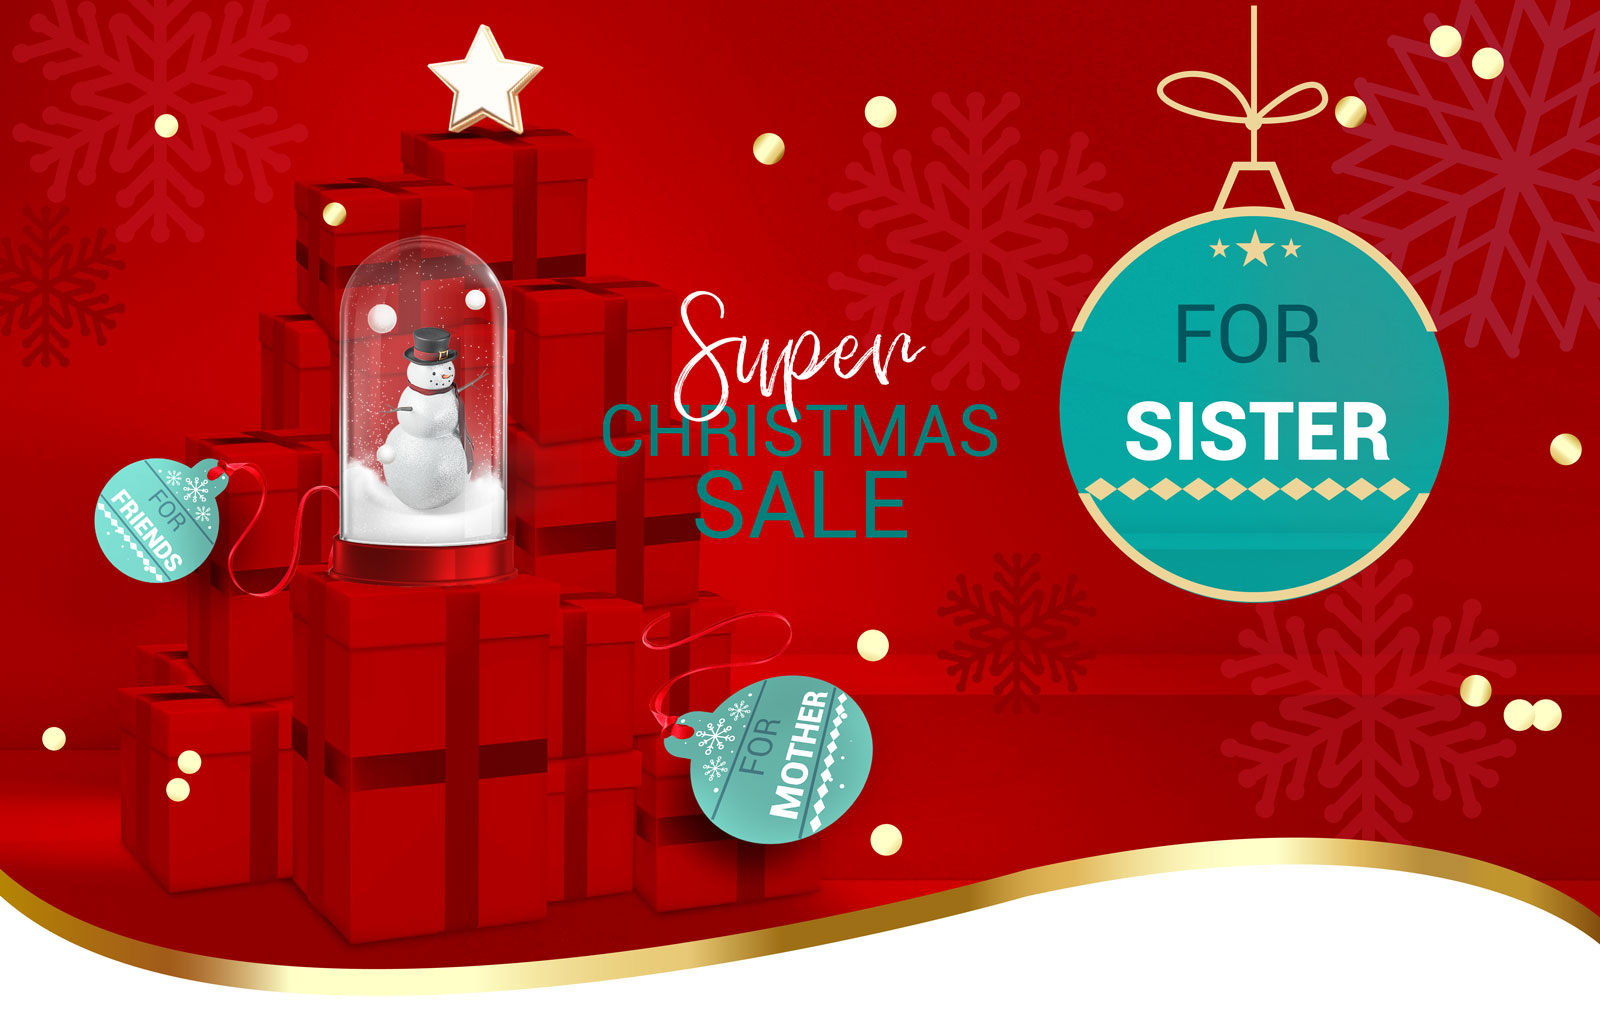 super christmas sale gift guide for sister